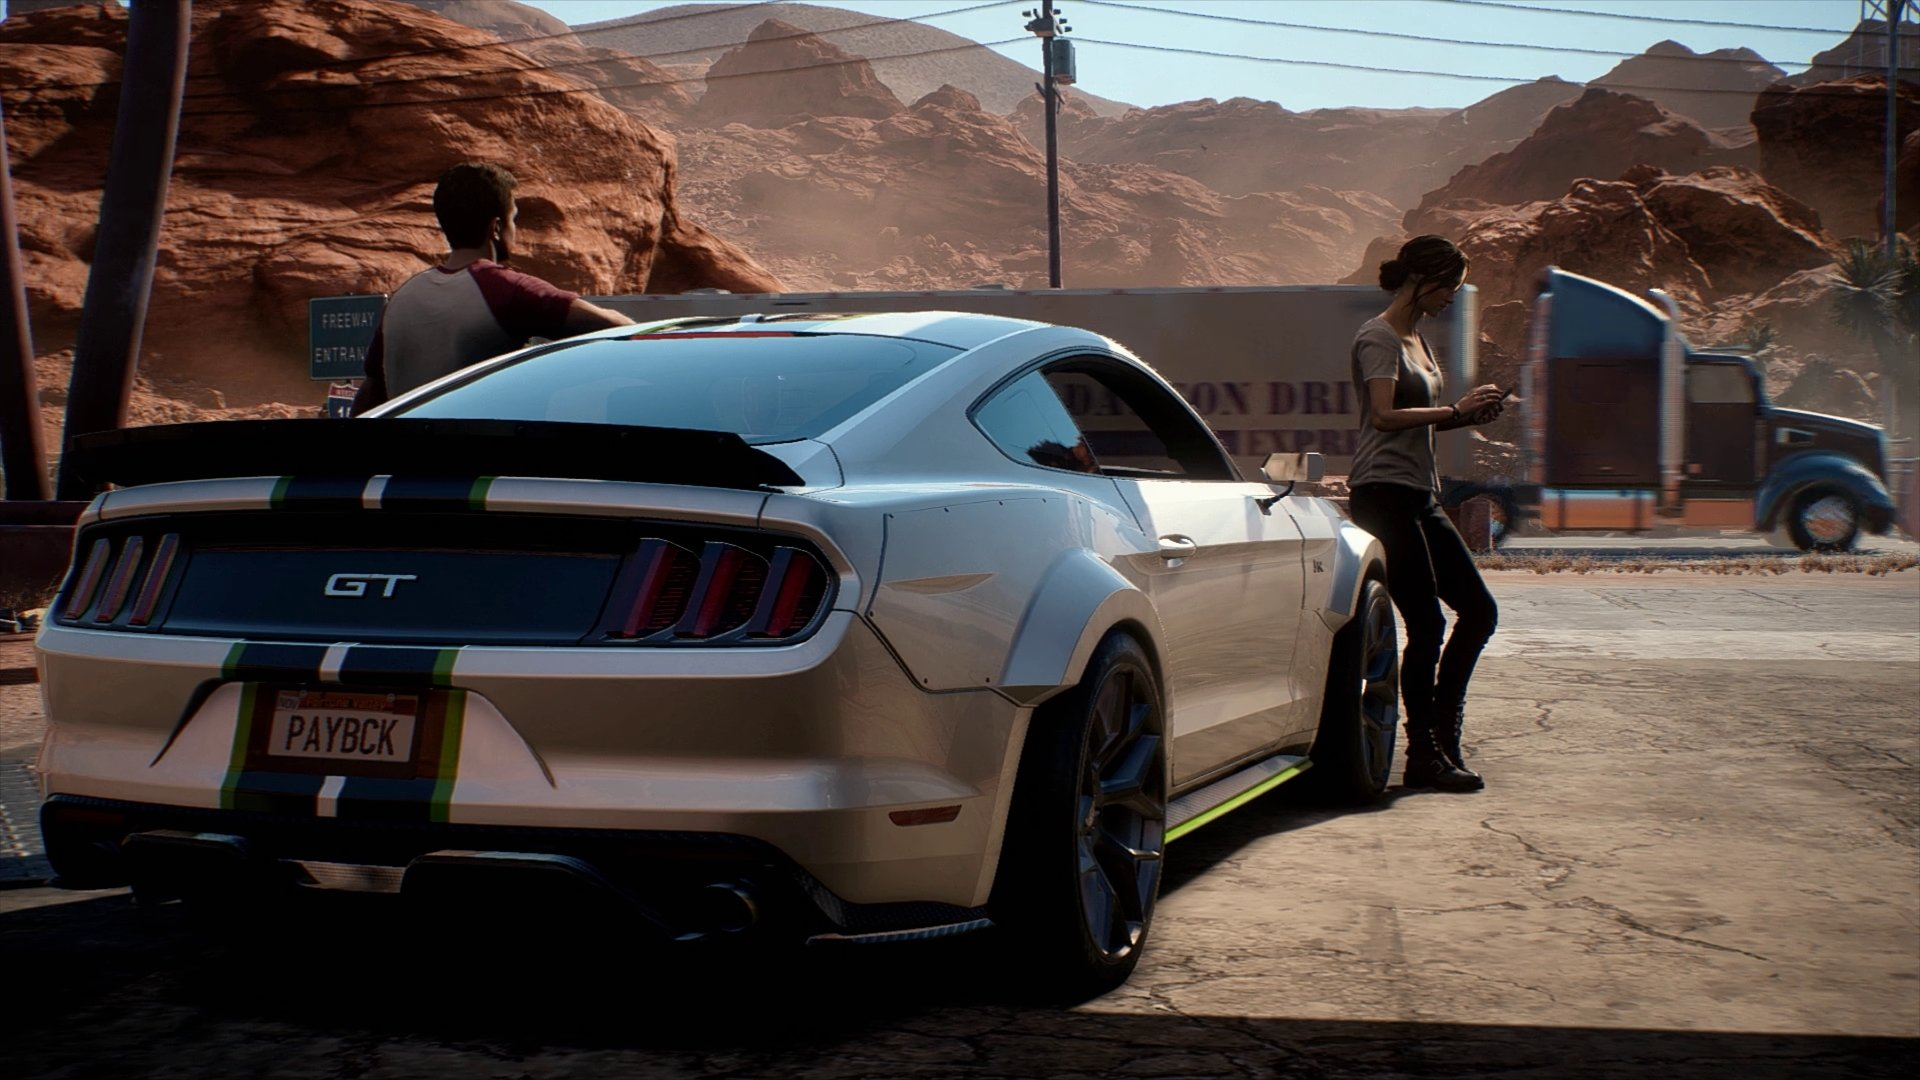 Car Ford Ford Mustang Gt Need For Speed Need For Speed Payback  C B Hd Wallpaper Background Image Id